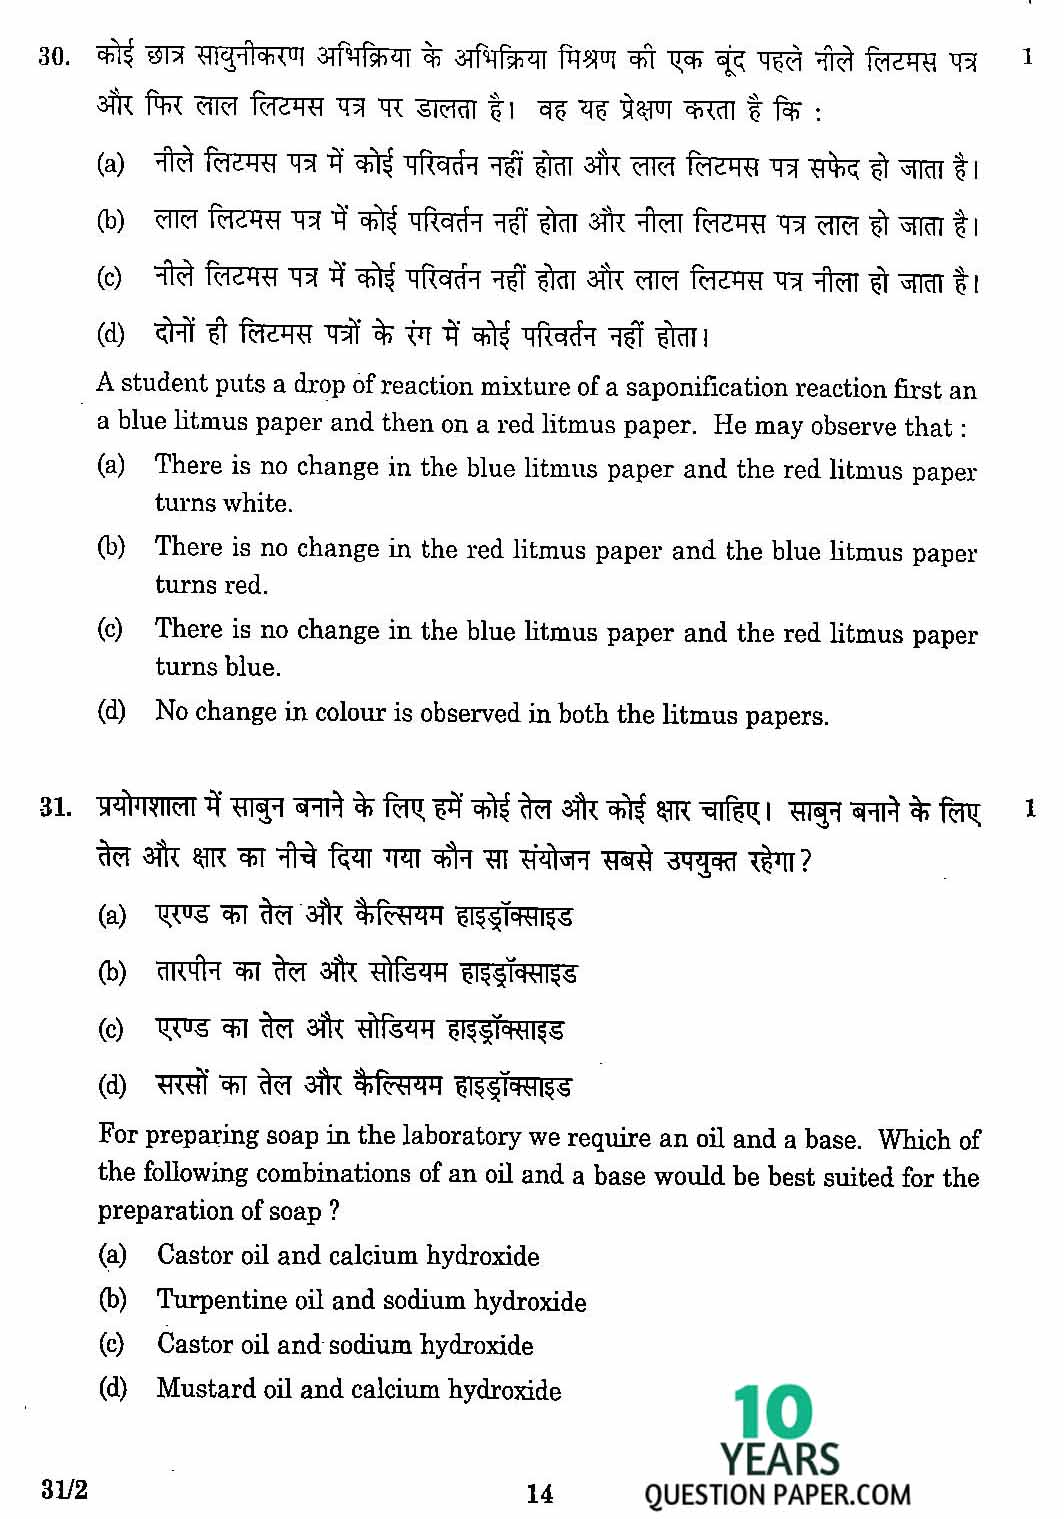 CBSE Class 10 Science 2016 Question Paper